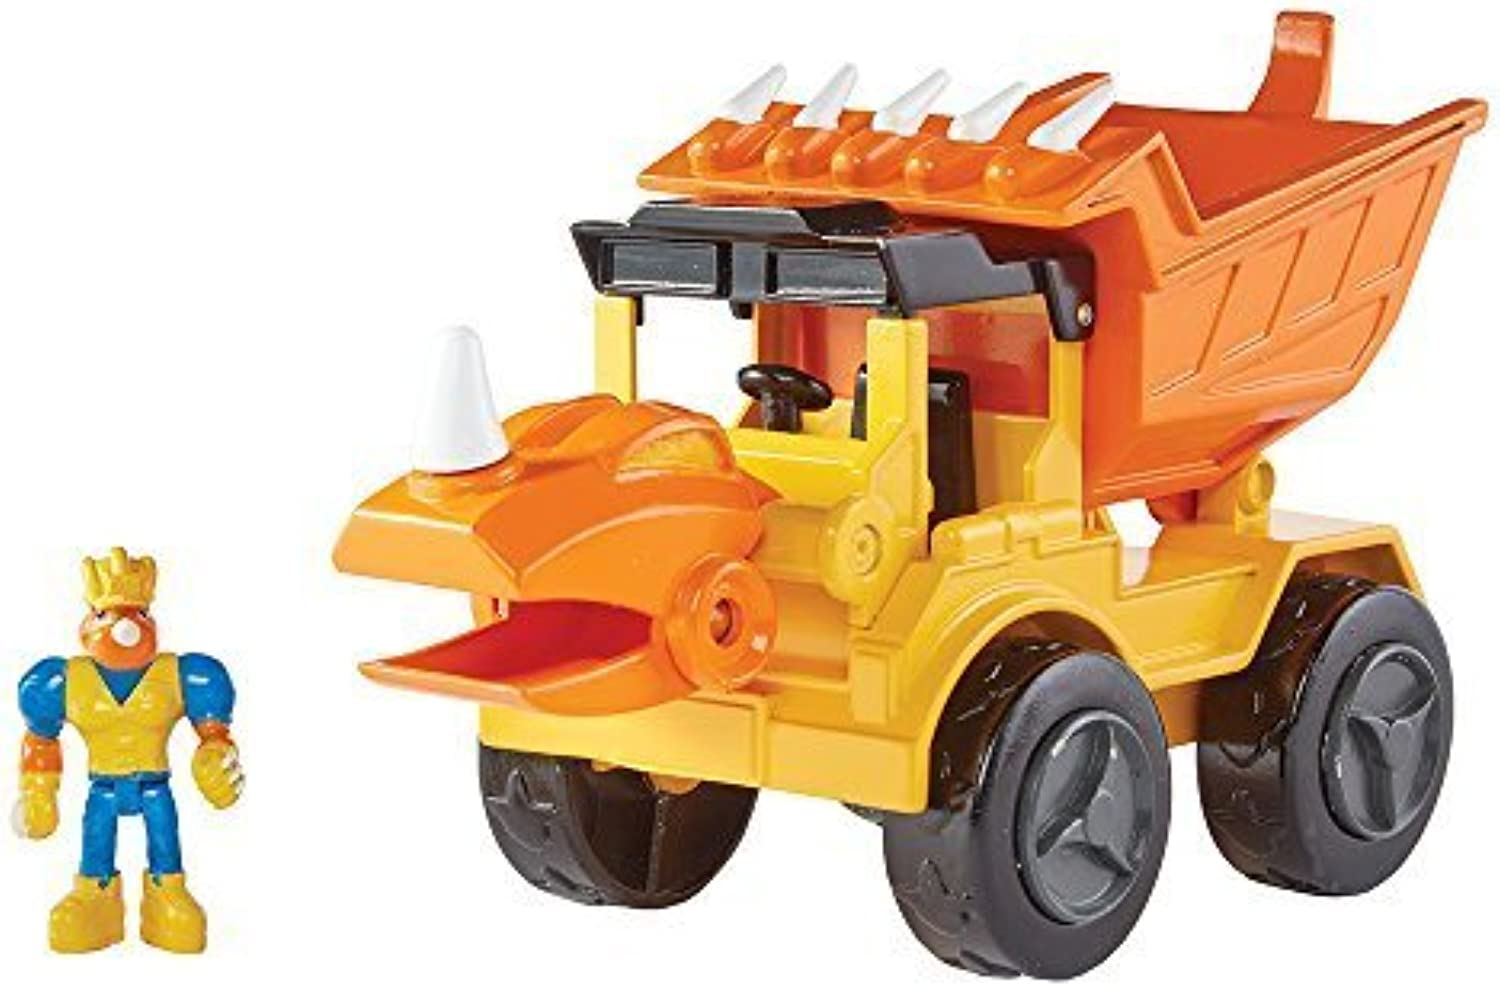 Educational Insights Dino Construction Company Play Sets  Rocko  Styracosaurus Dump Truck by Learning Resources